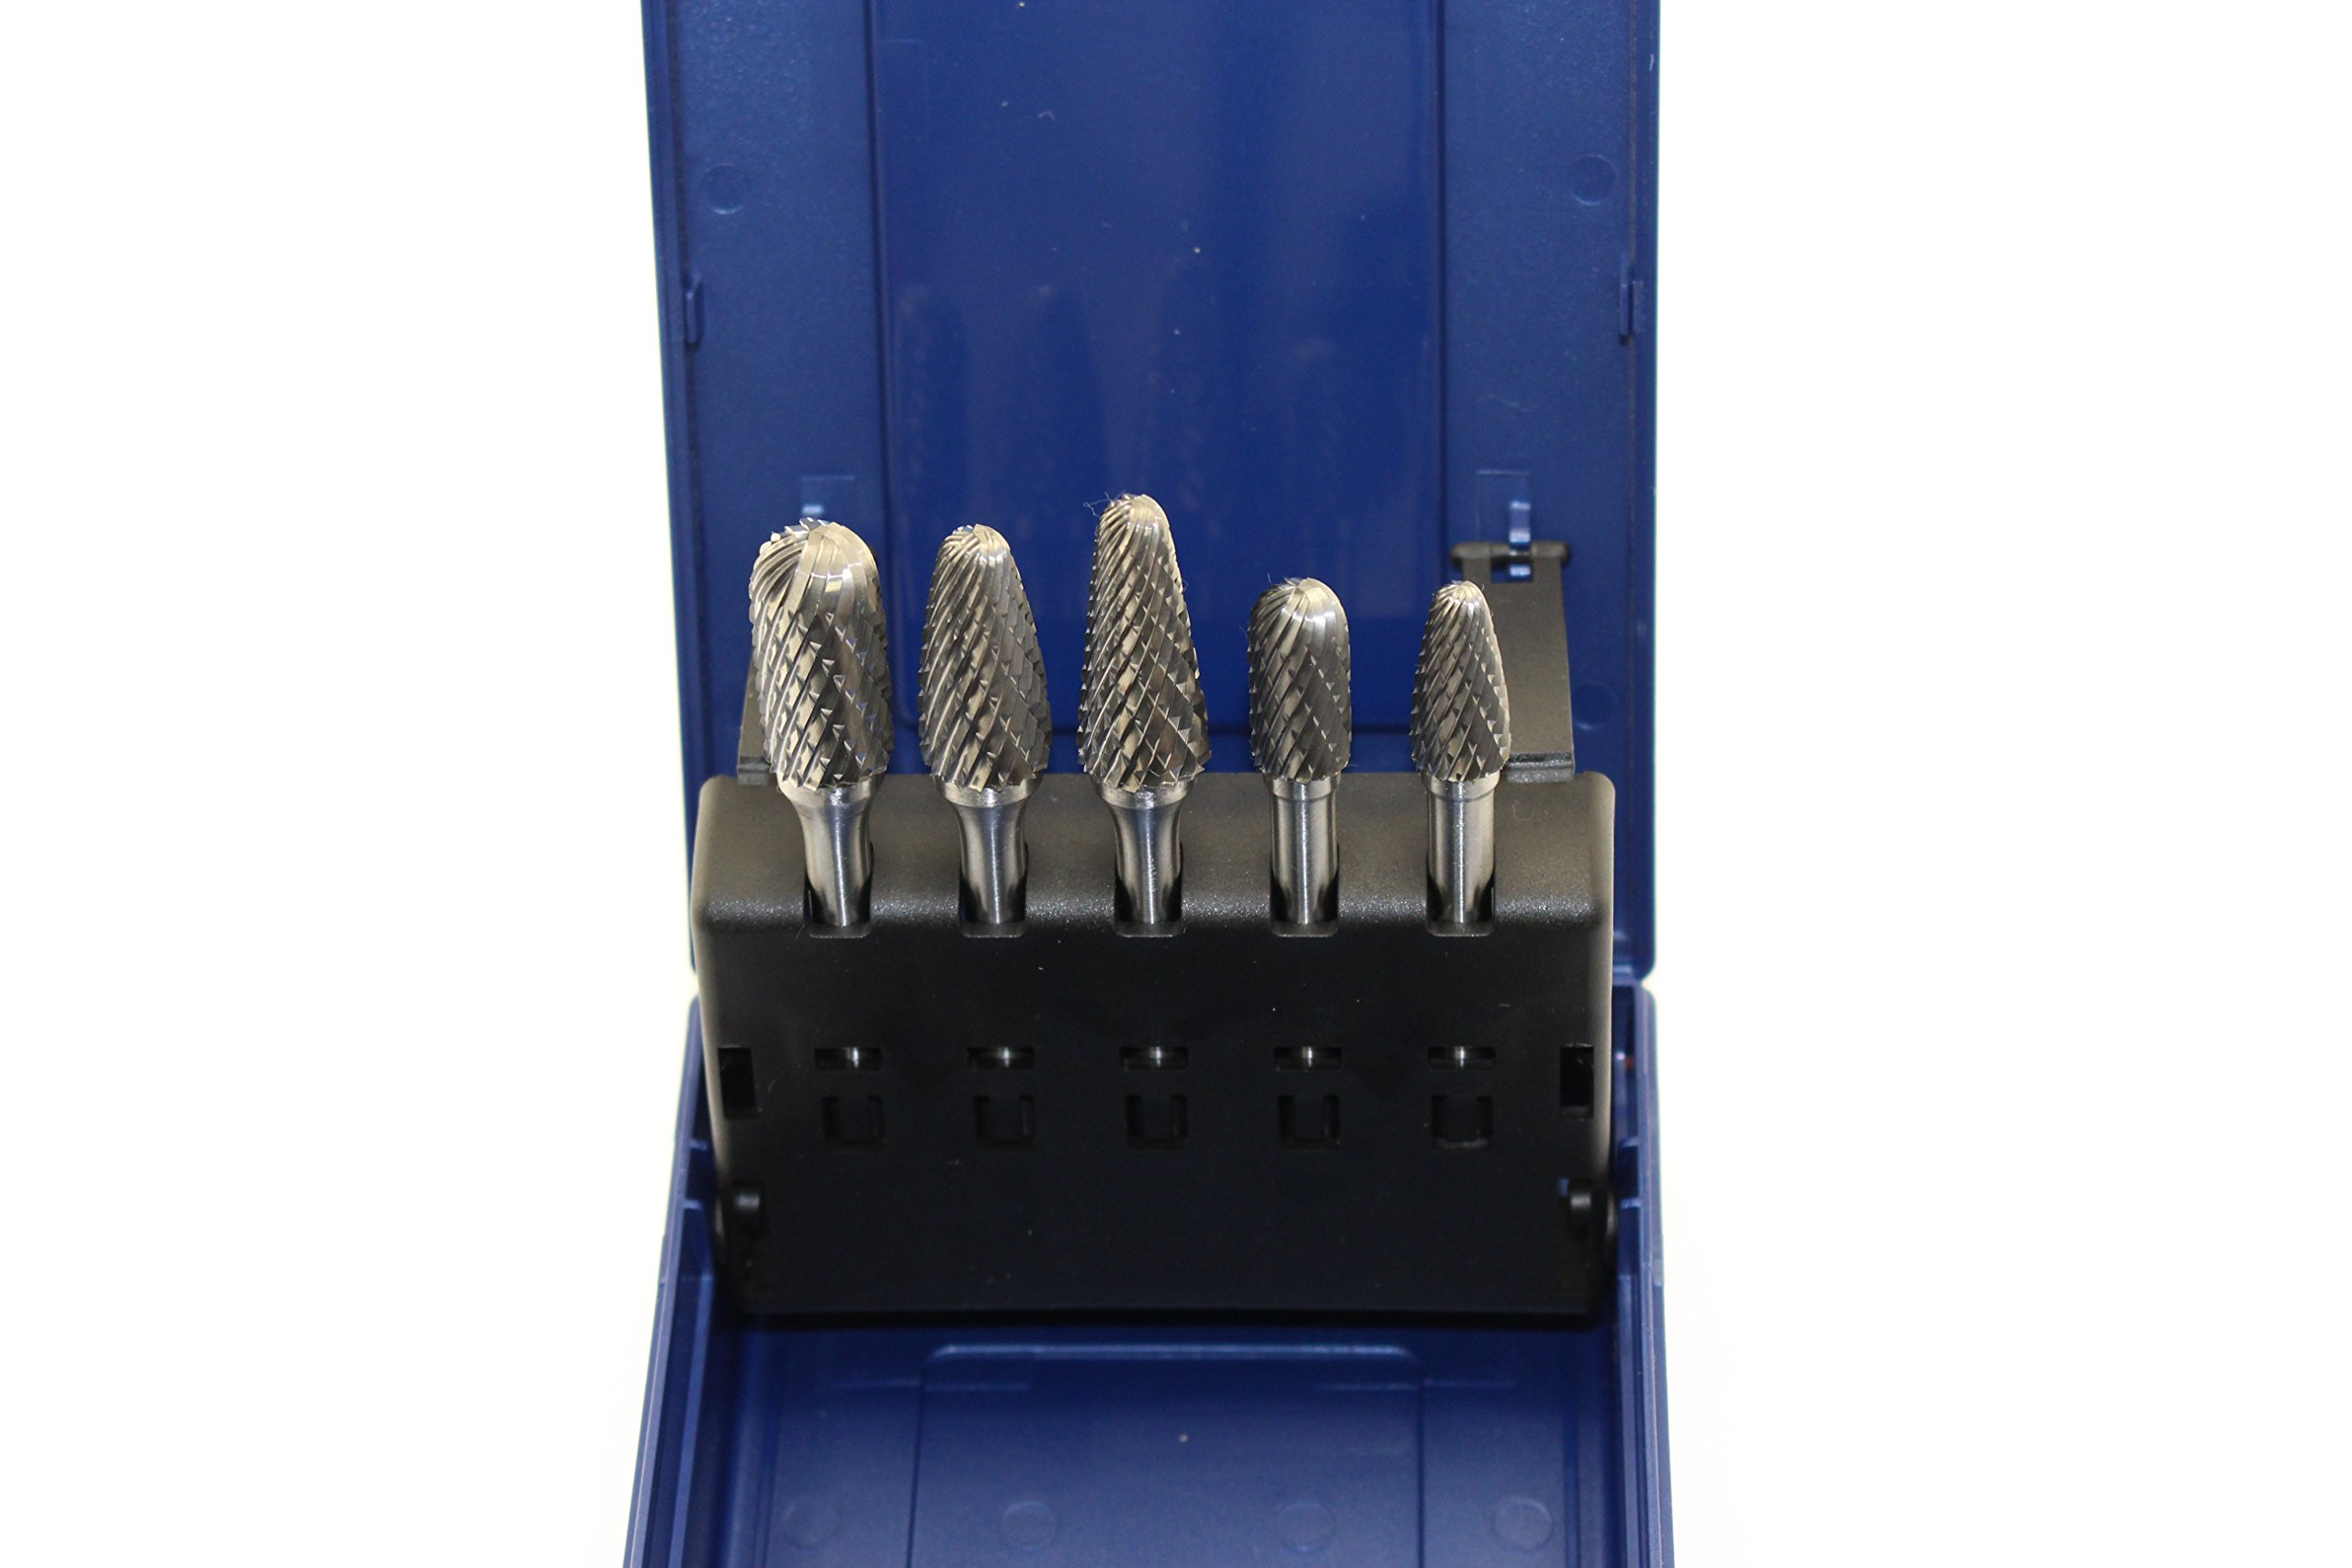 TEMO 5 pc Set Double Cut CARBIDE ROTARY BURR FILE TOOL, 1/2 inch (12.7mm) and 3/8 inch (9.5mm) Heads, 1/4 inch (6.35mm) Diameter 2 inch (50.8mm) Long Shank